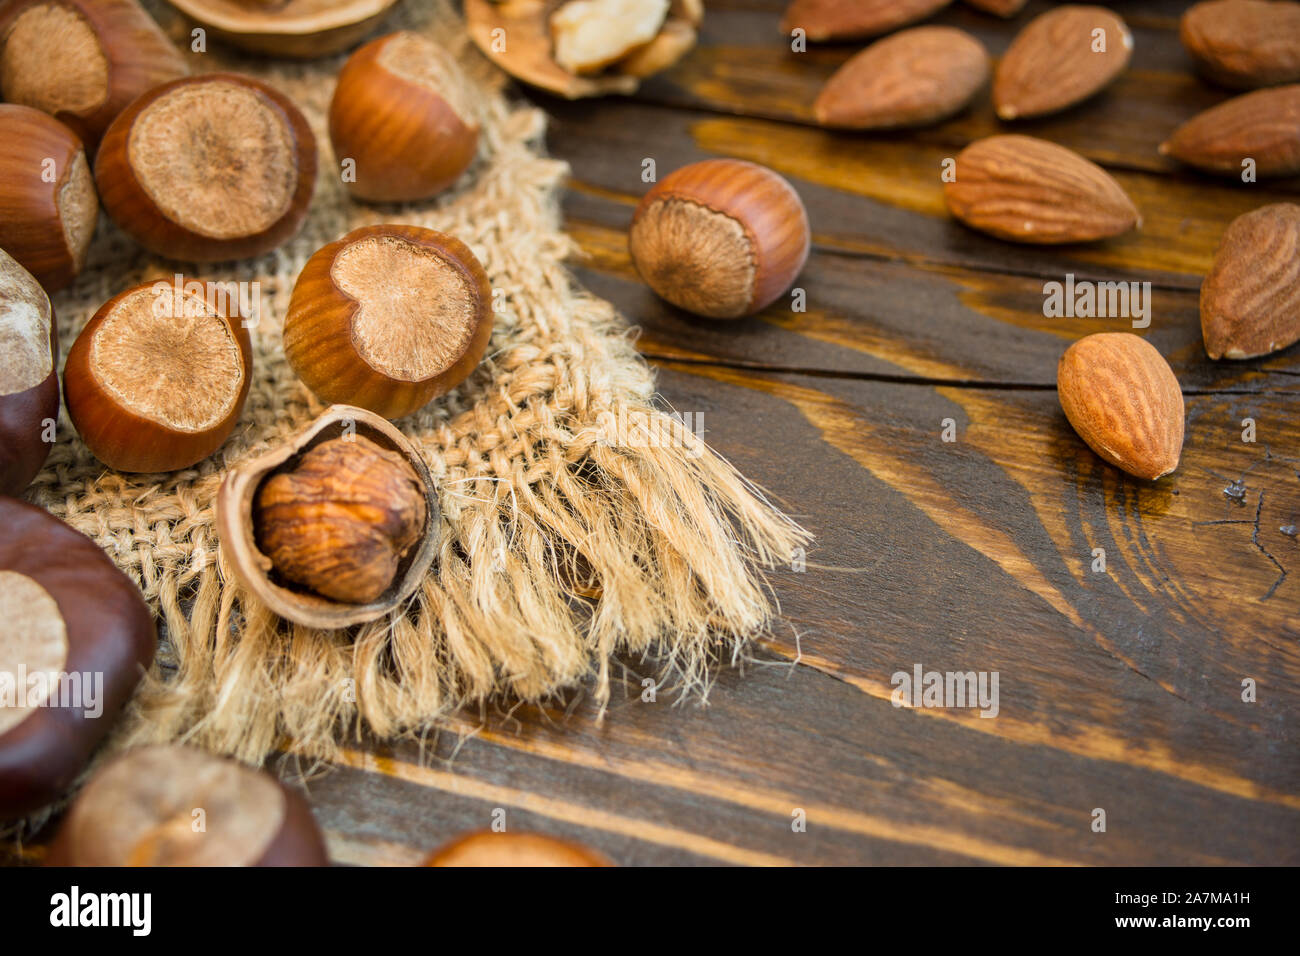 Mix of different nuts on a rustic background. Close-up photo with copy space. Healthy nutrition concept. Stock Photo